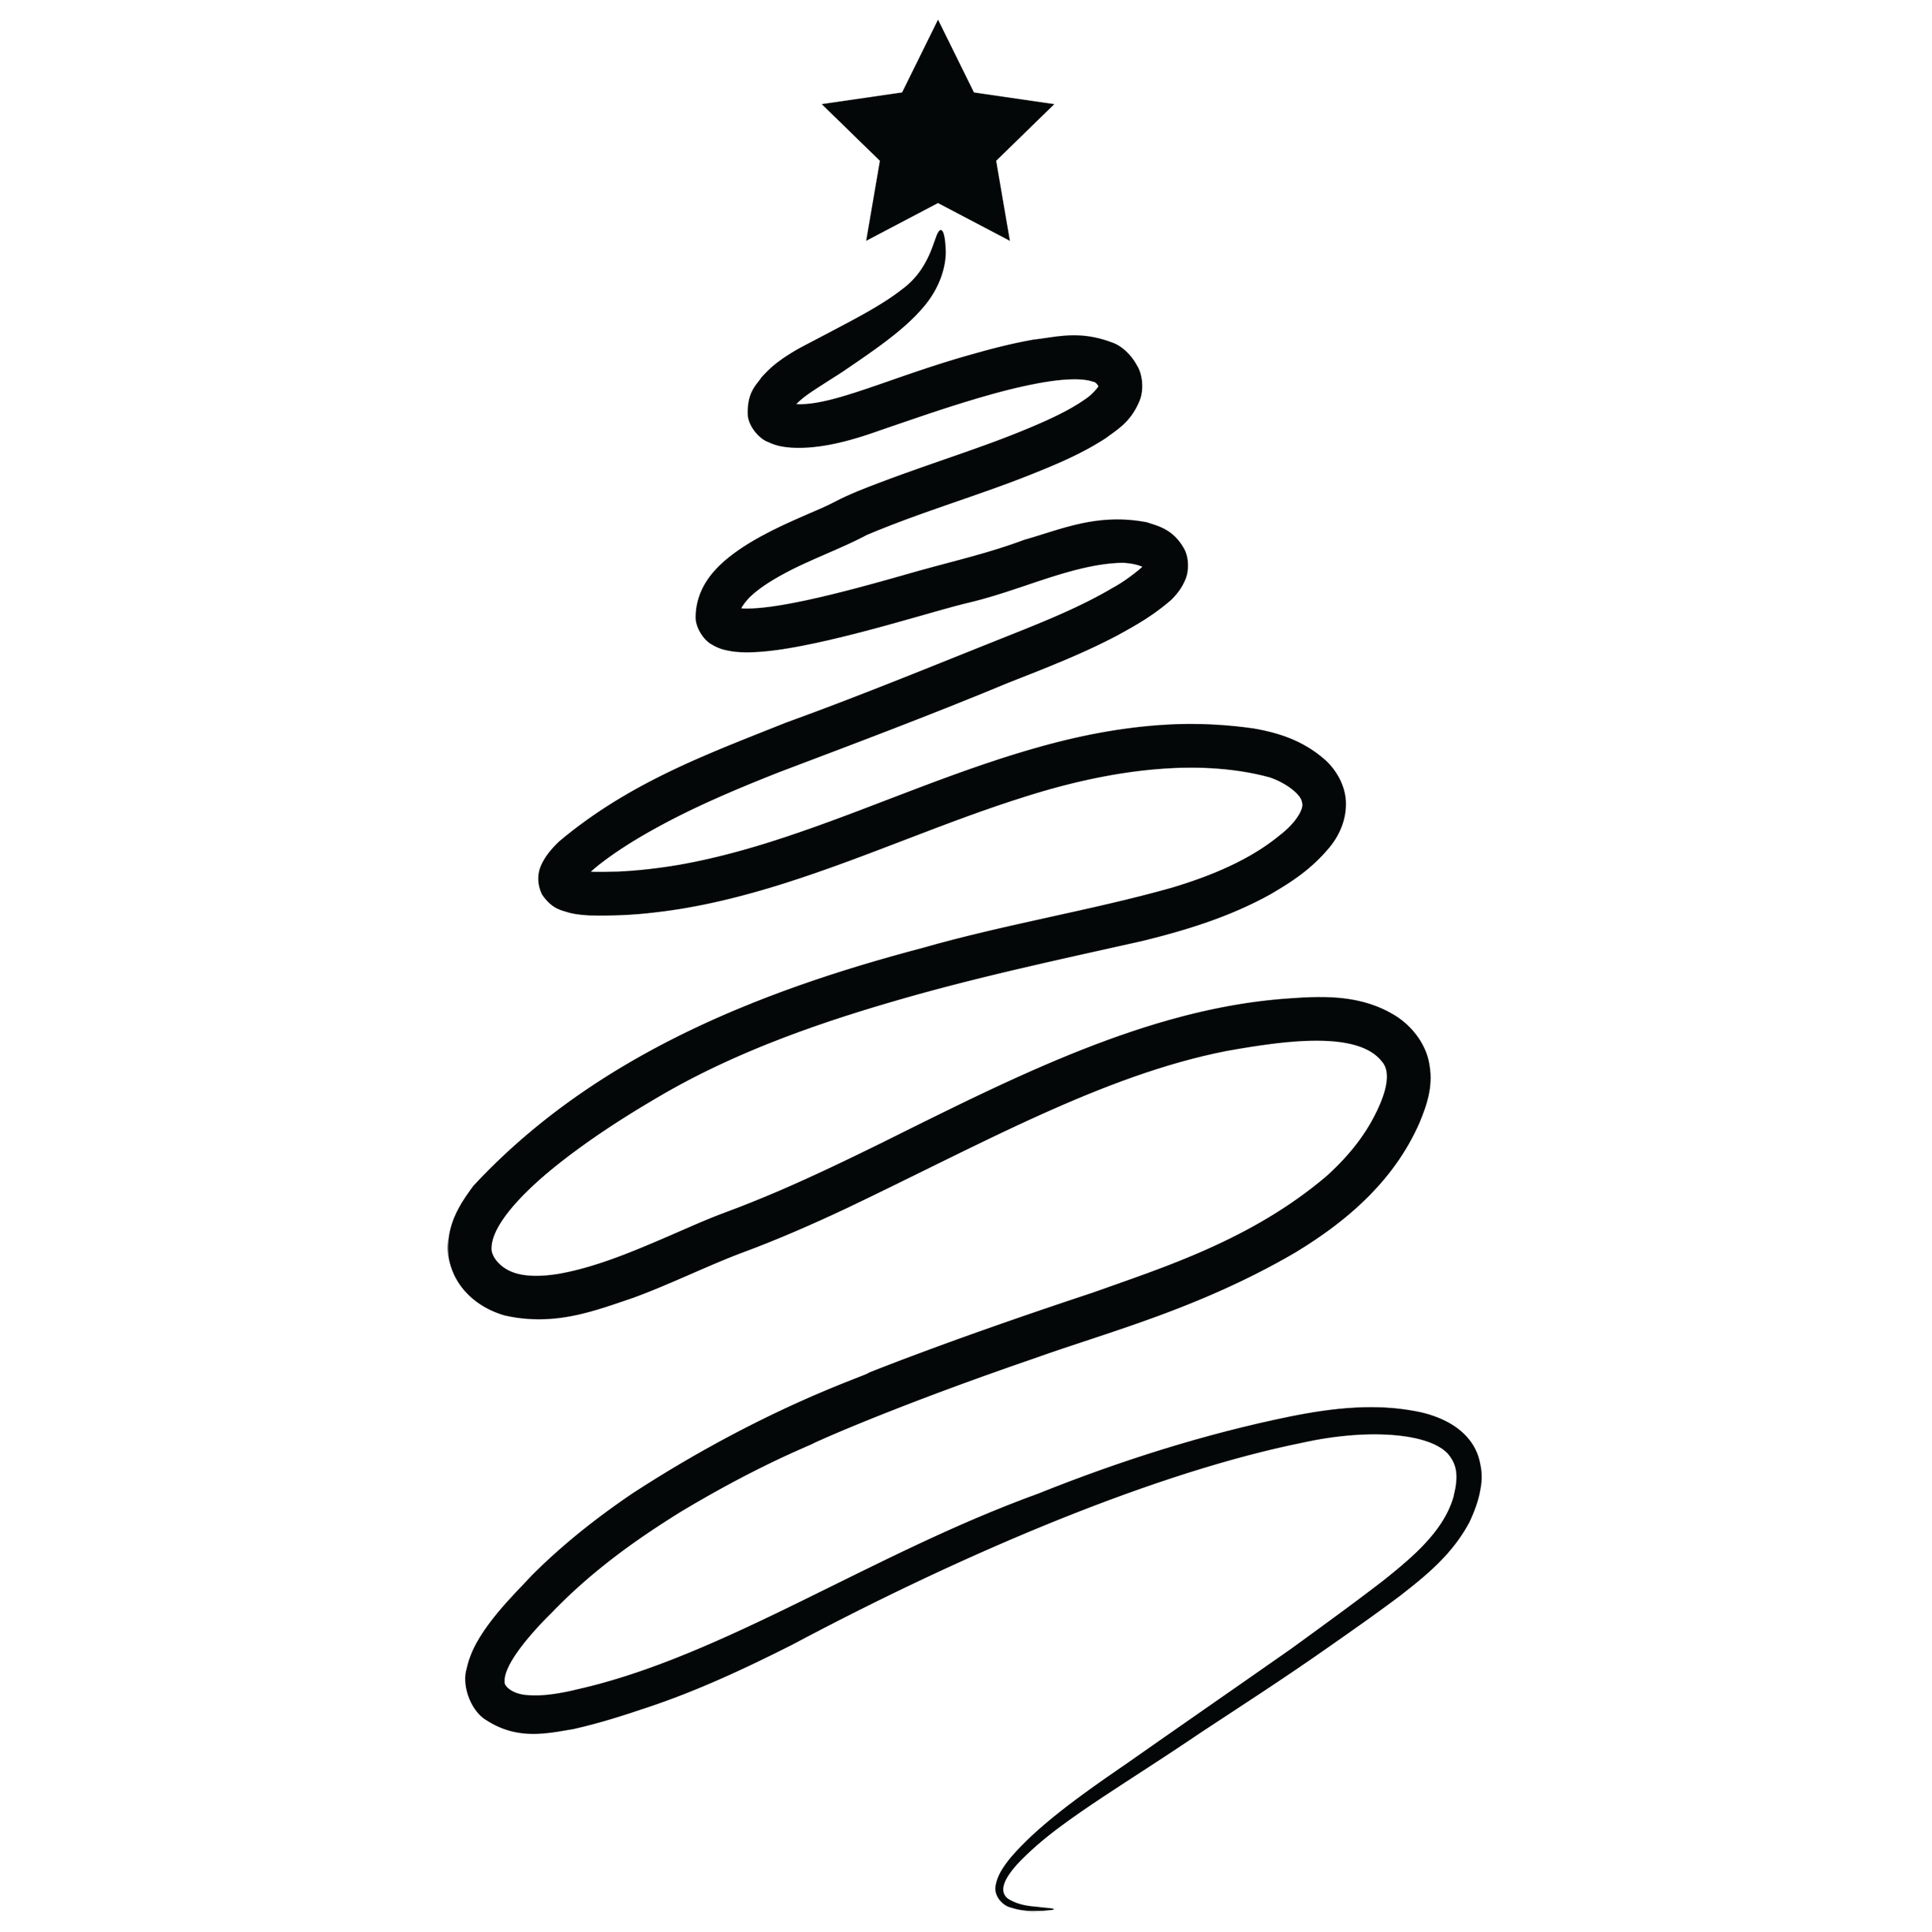 Christmas Tree Images Black And White.Christmas Tree Silhouette Clip Art At Getdrawings Com Free